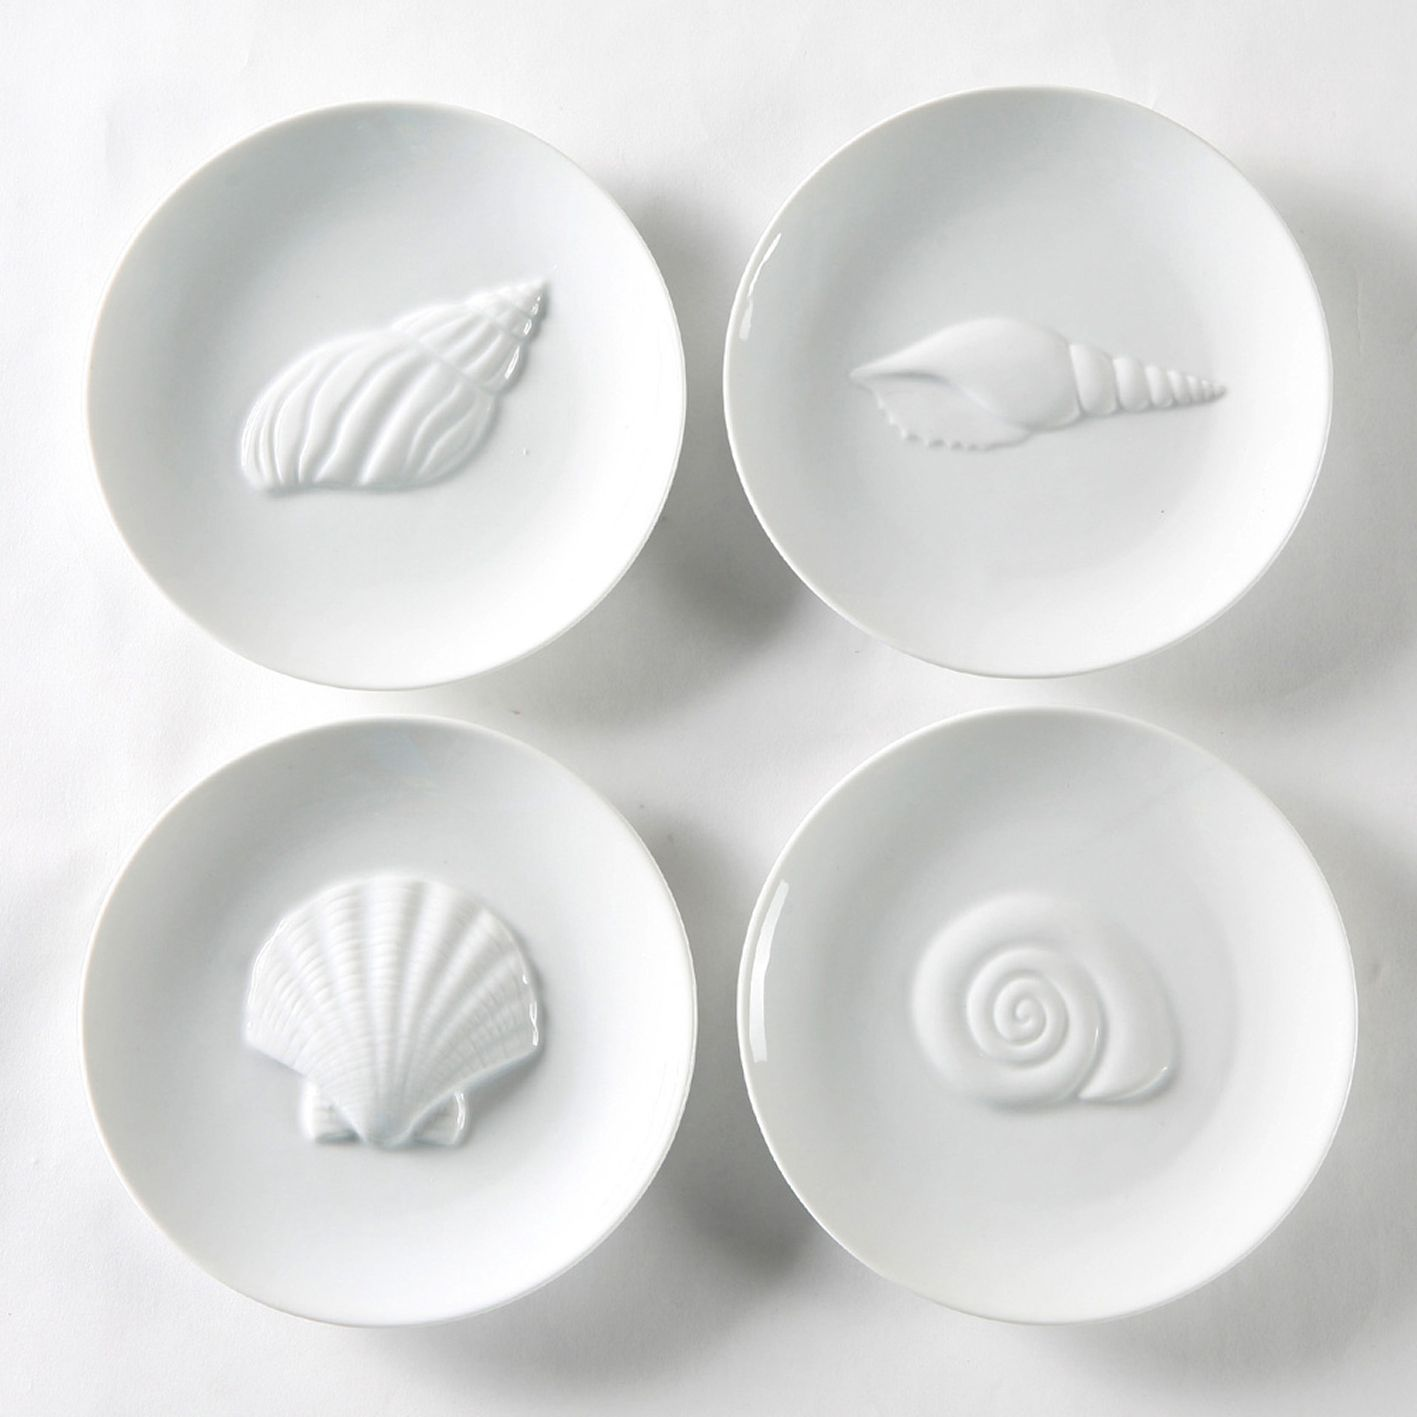 Treasures of the Sea Appetizer Plate Set                                                                                         at mygofer.com